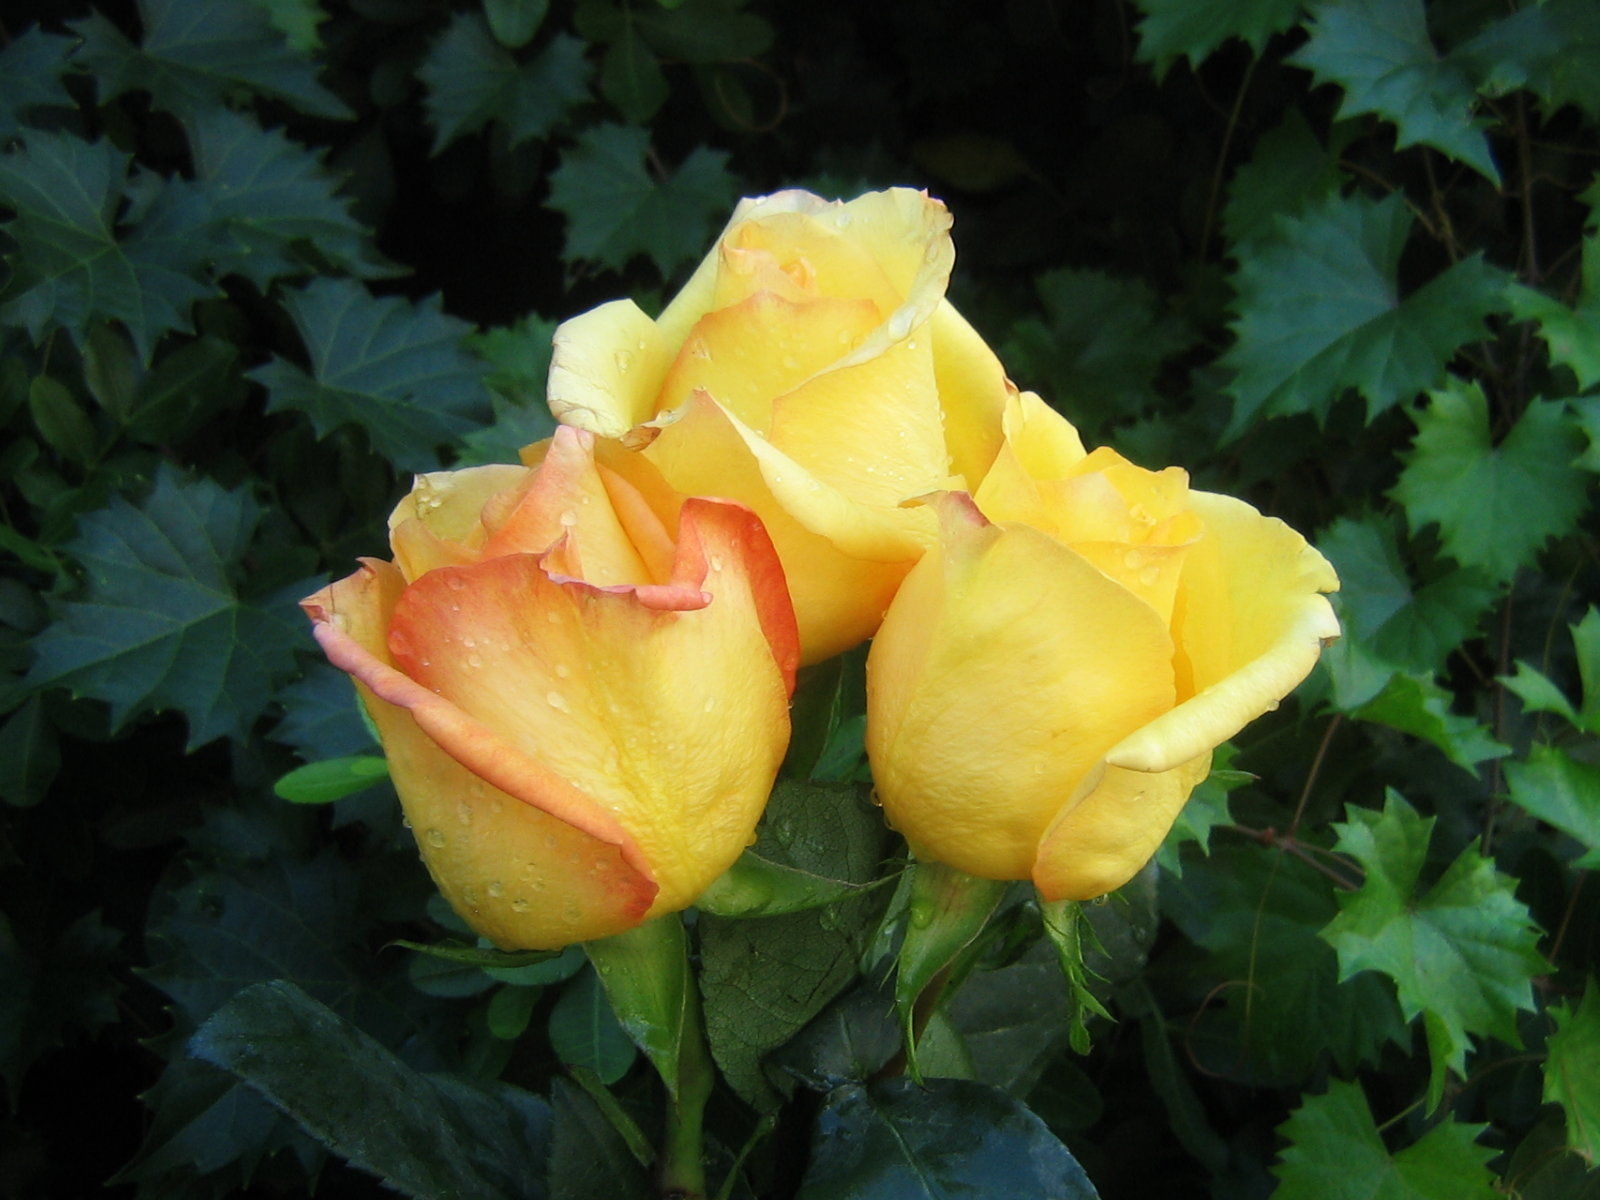 wallpaper of yellow roses - photo #40